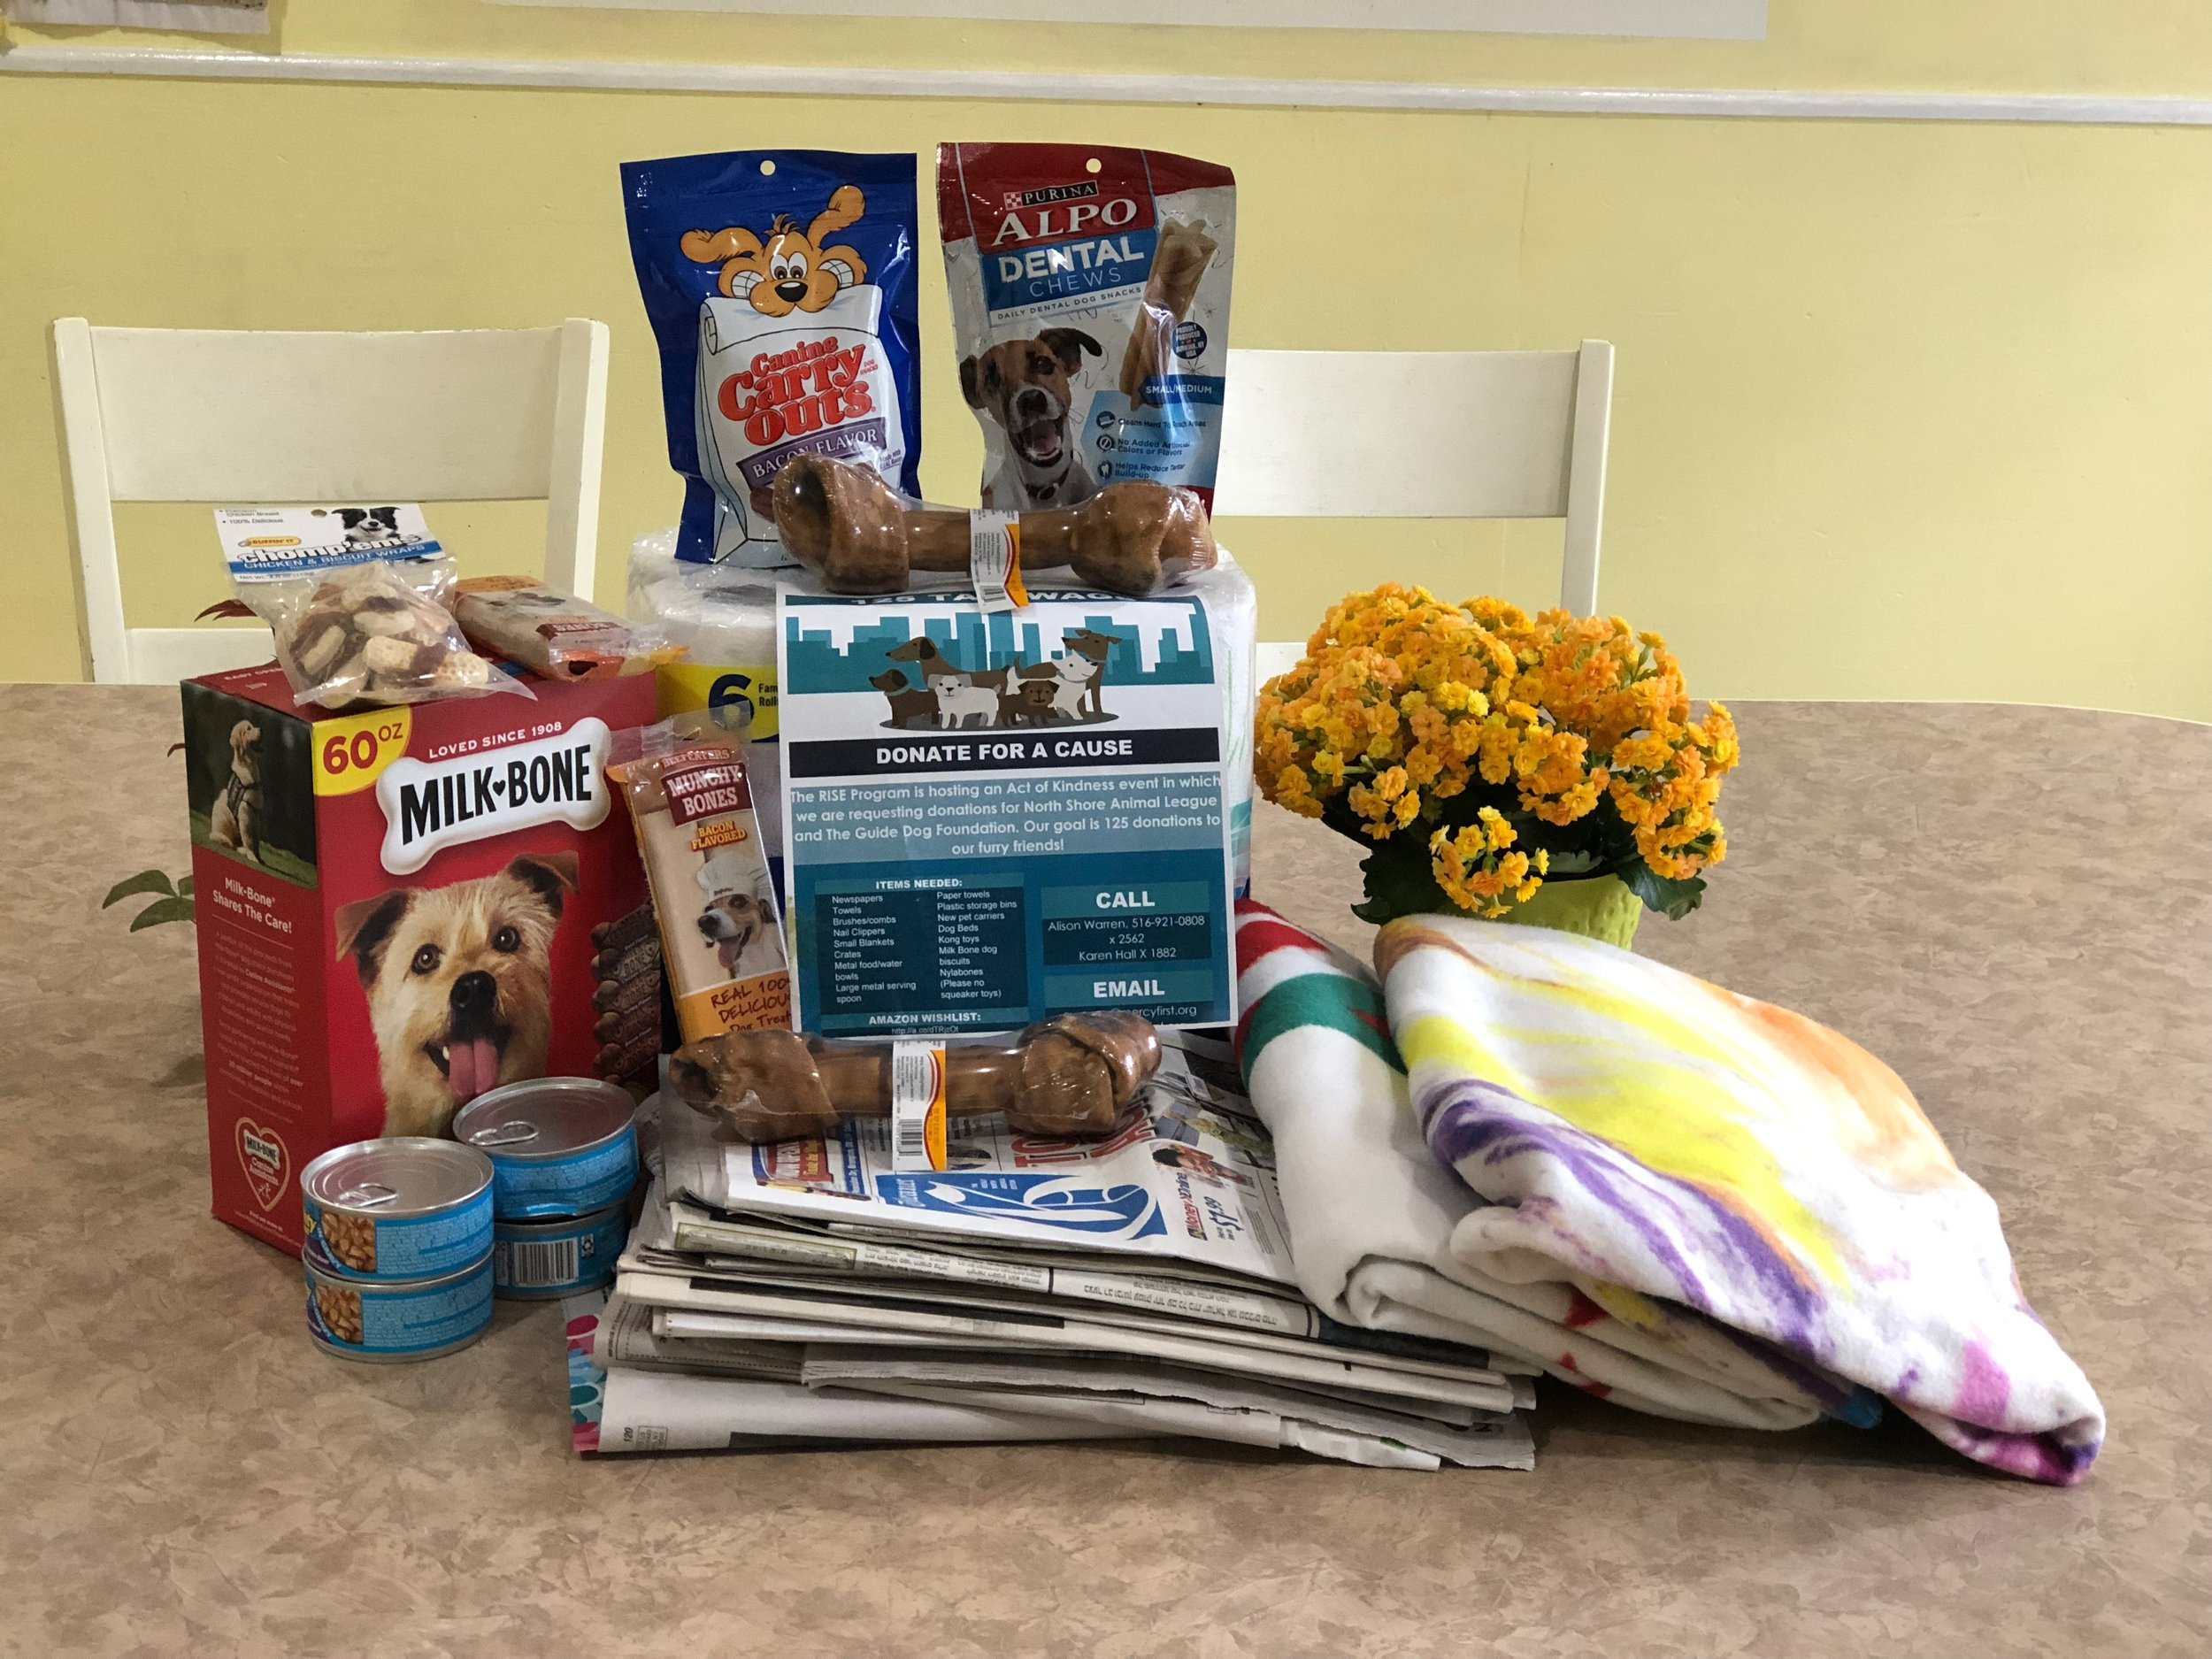 Merrick Group Home Staff   Help the RISE Program in their efforts to support the North Shore Animal league and the Guide Dog Foundation with donations.